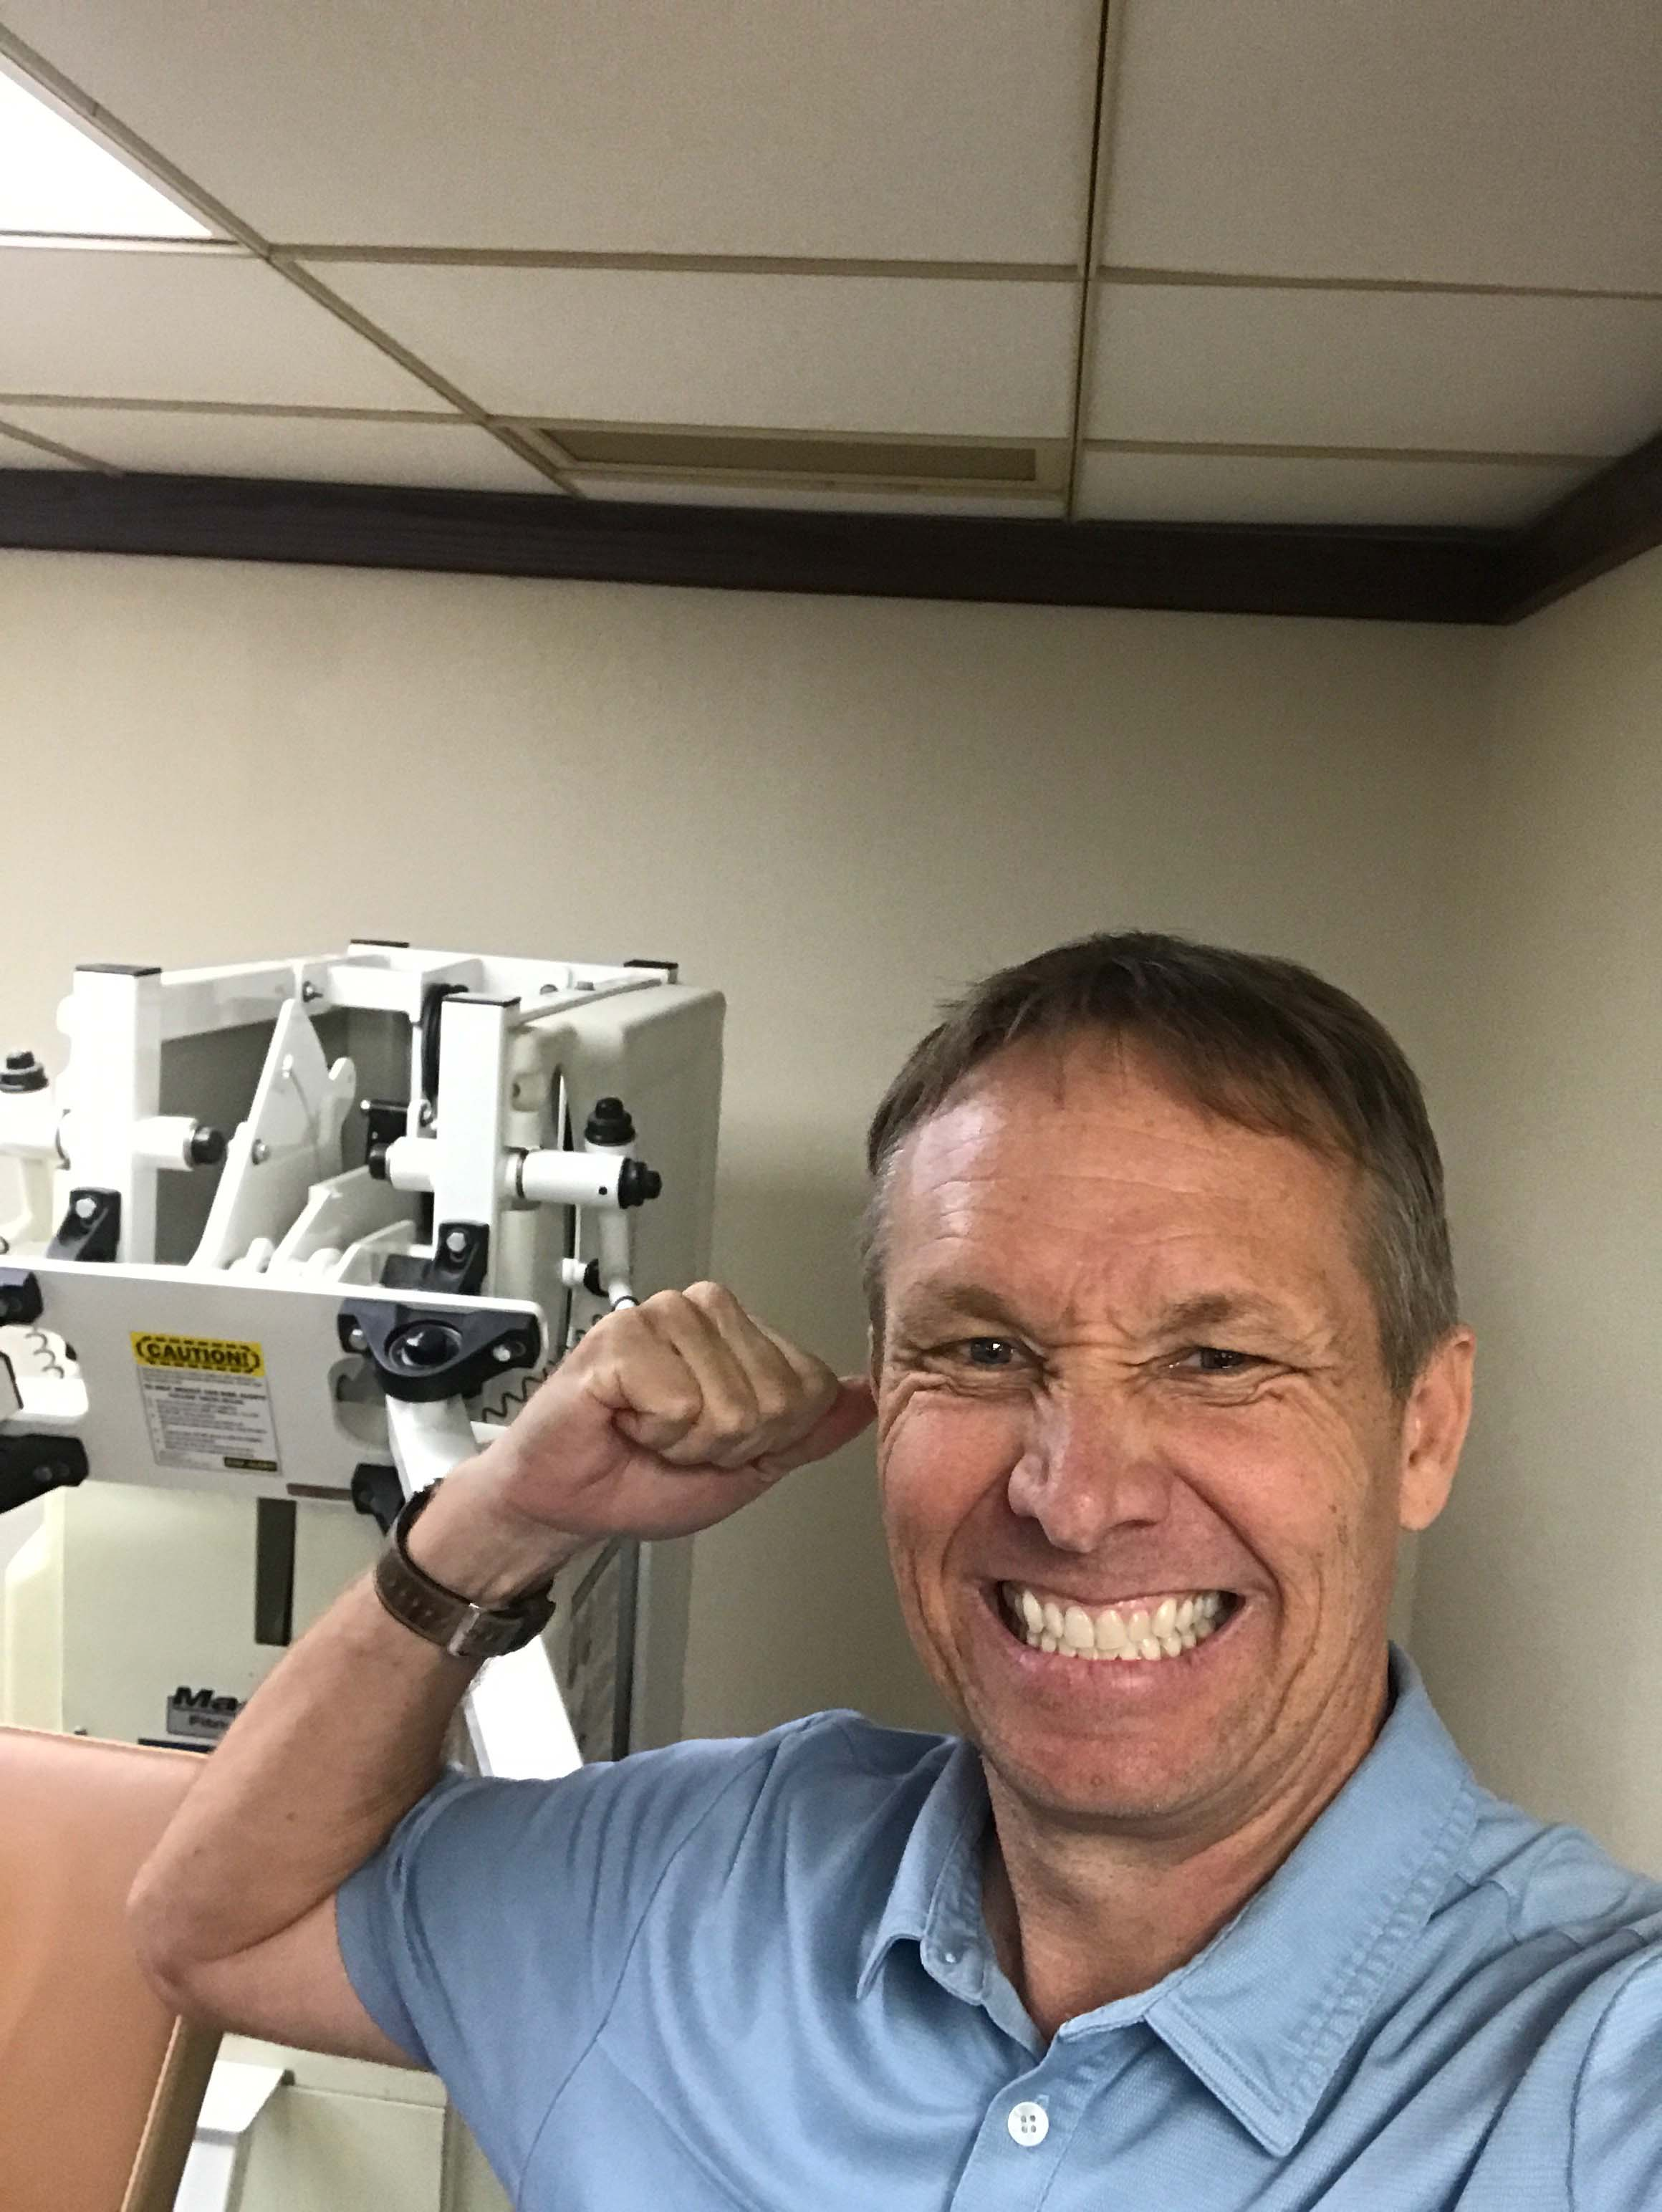 Three weeks after his surgery, Billy was told that he might have to do chemotherapy and that the better shape he was in, the easier it would be on him, so he began working out the very next day.